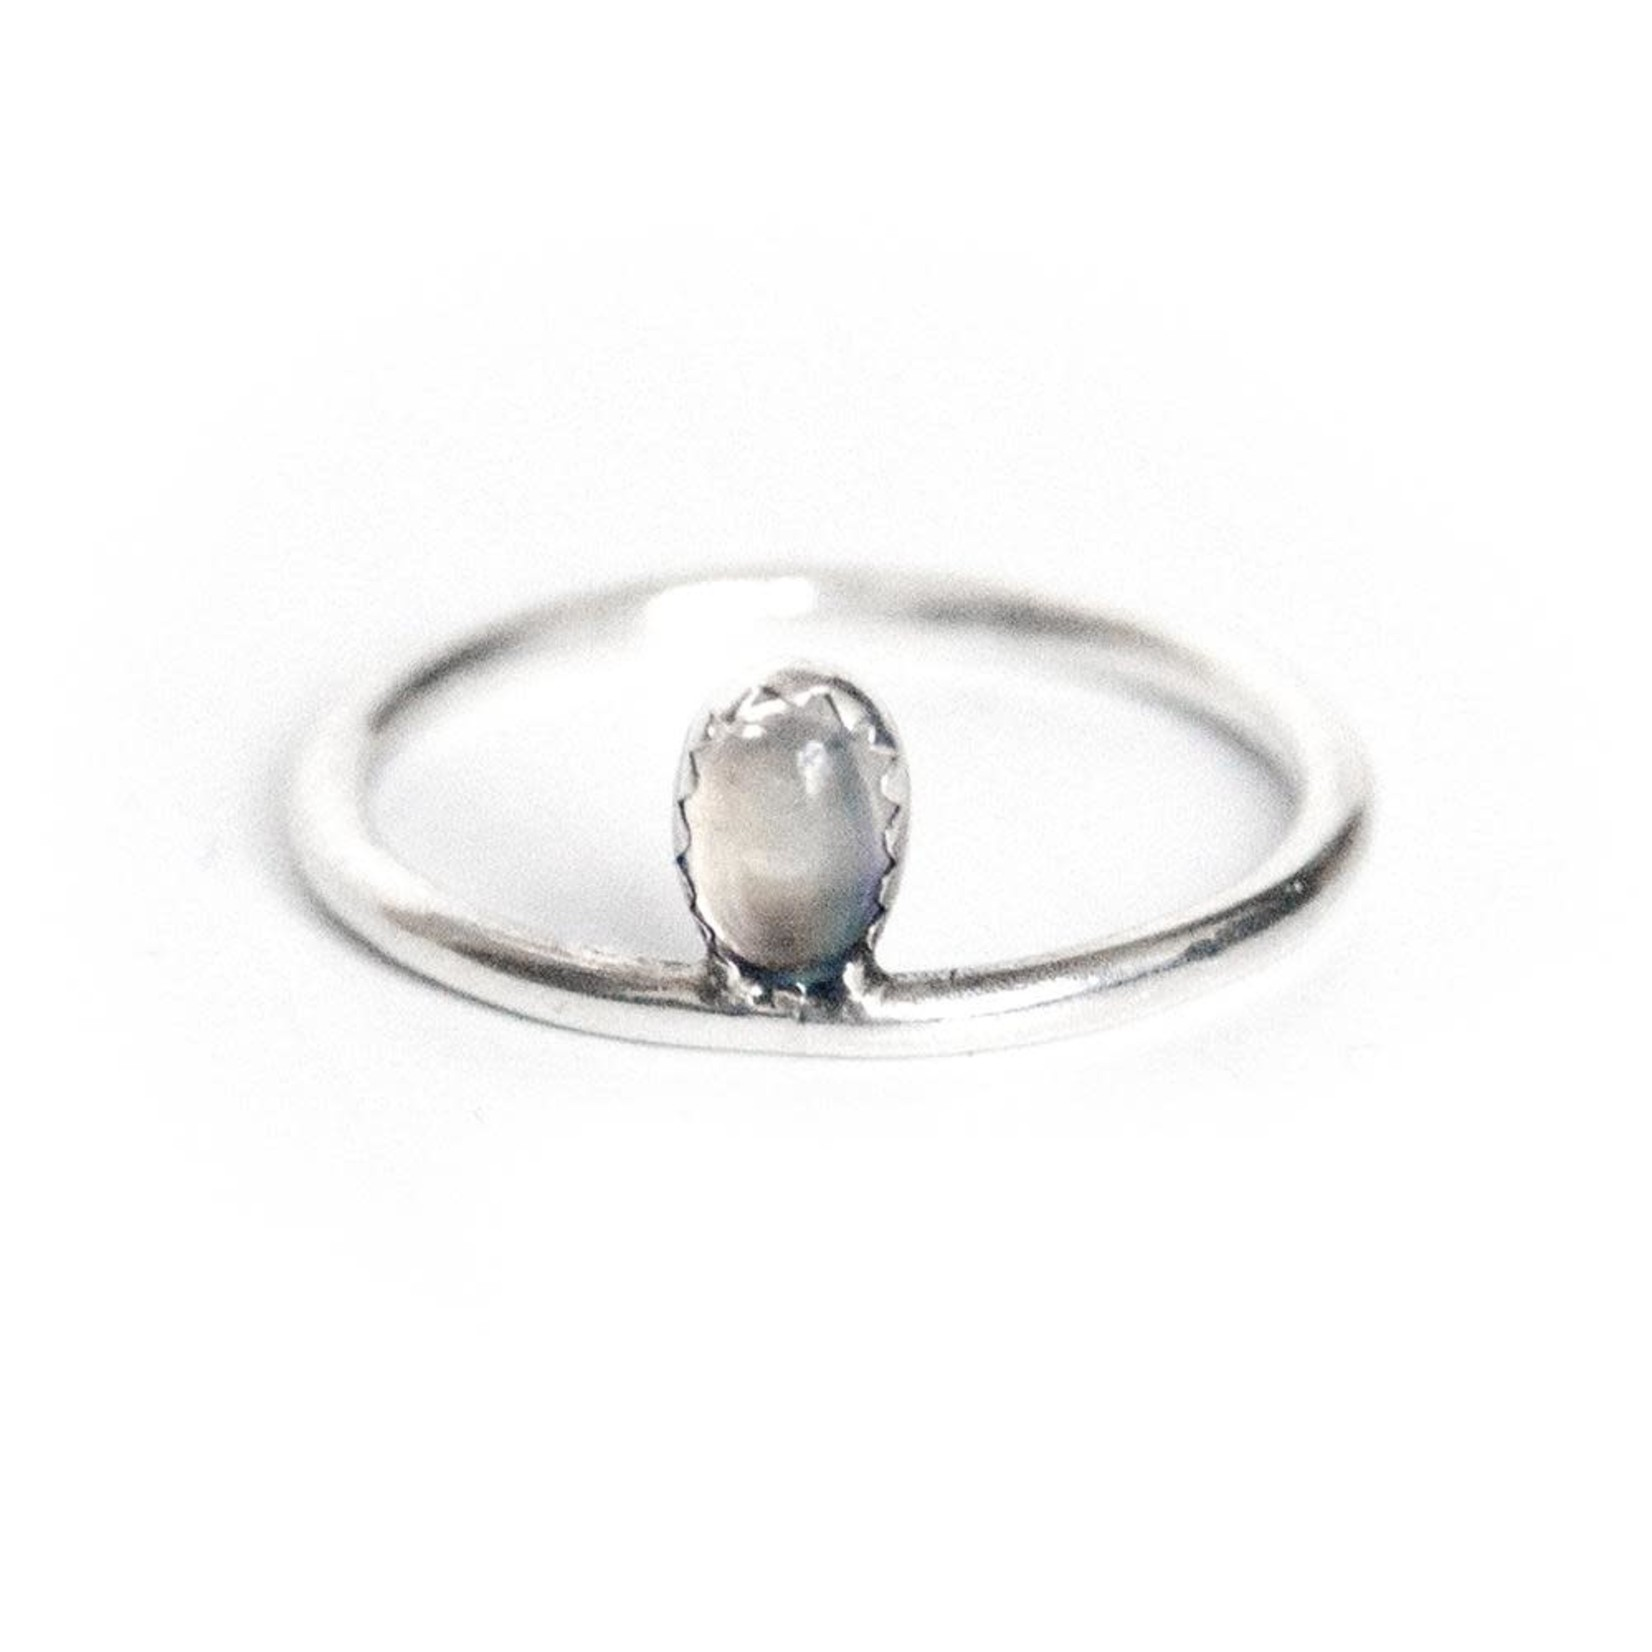 Welldunn jewelry Welldunn bague MOUNIA argent